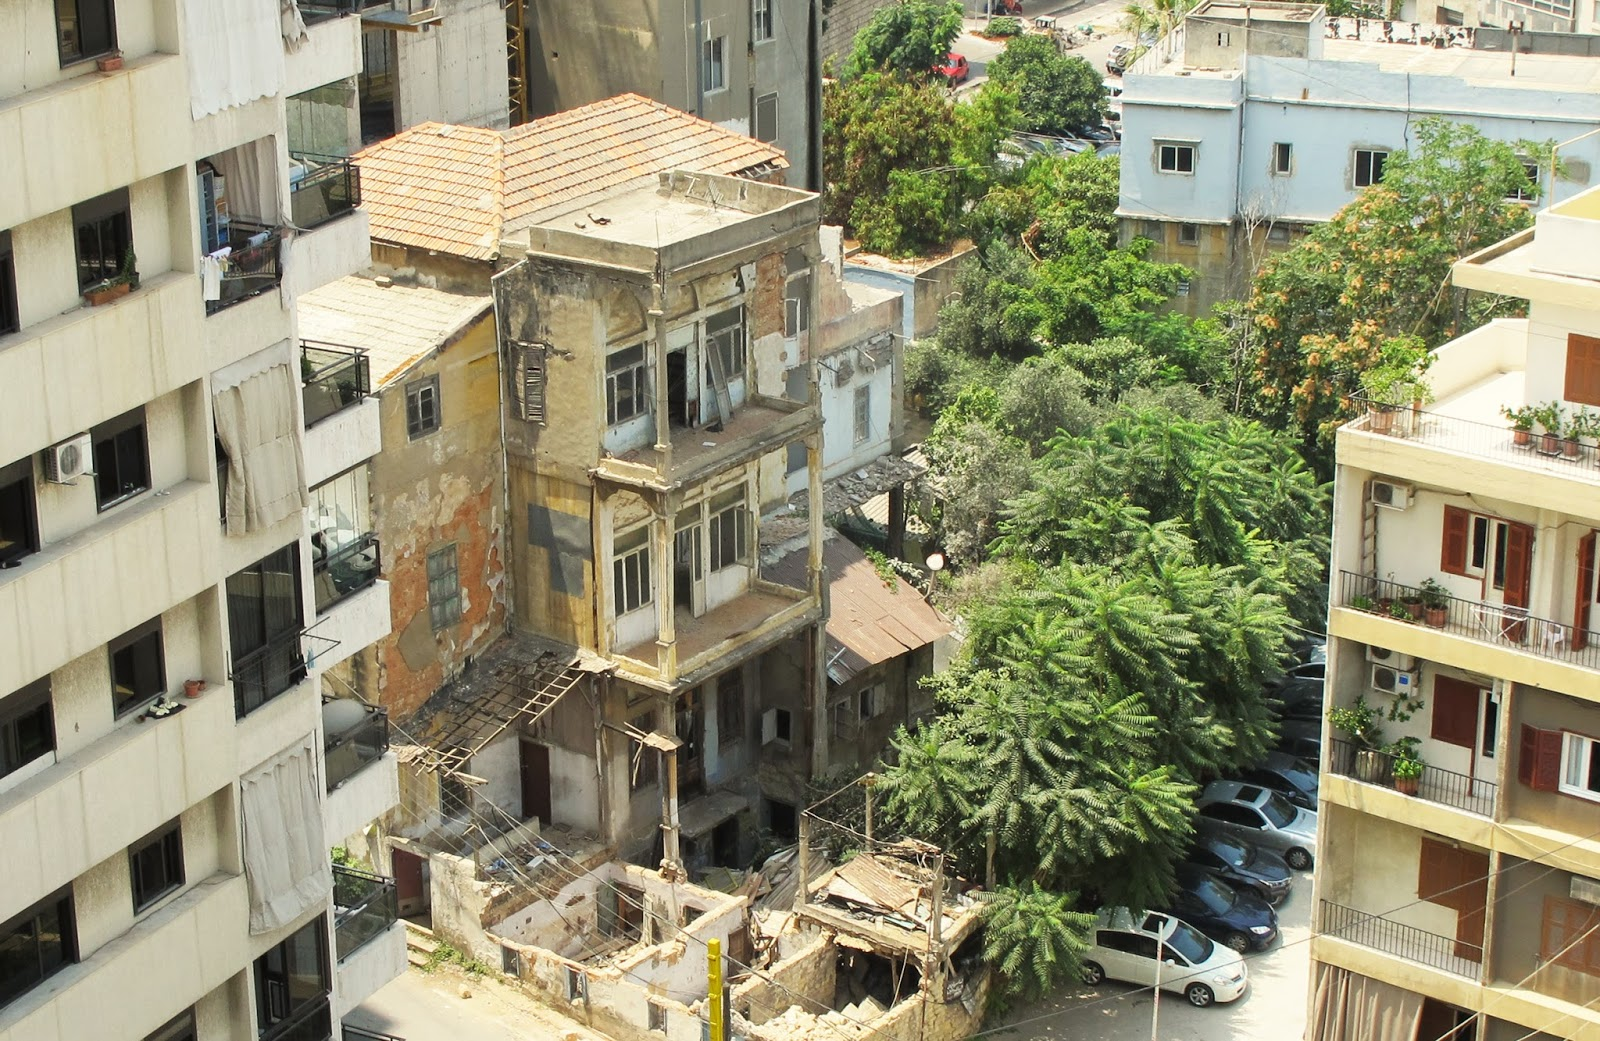 Claude el khal the slow murder of beirut s soul for Old traditional houses